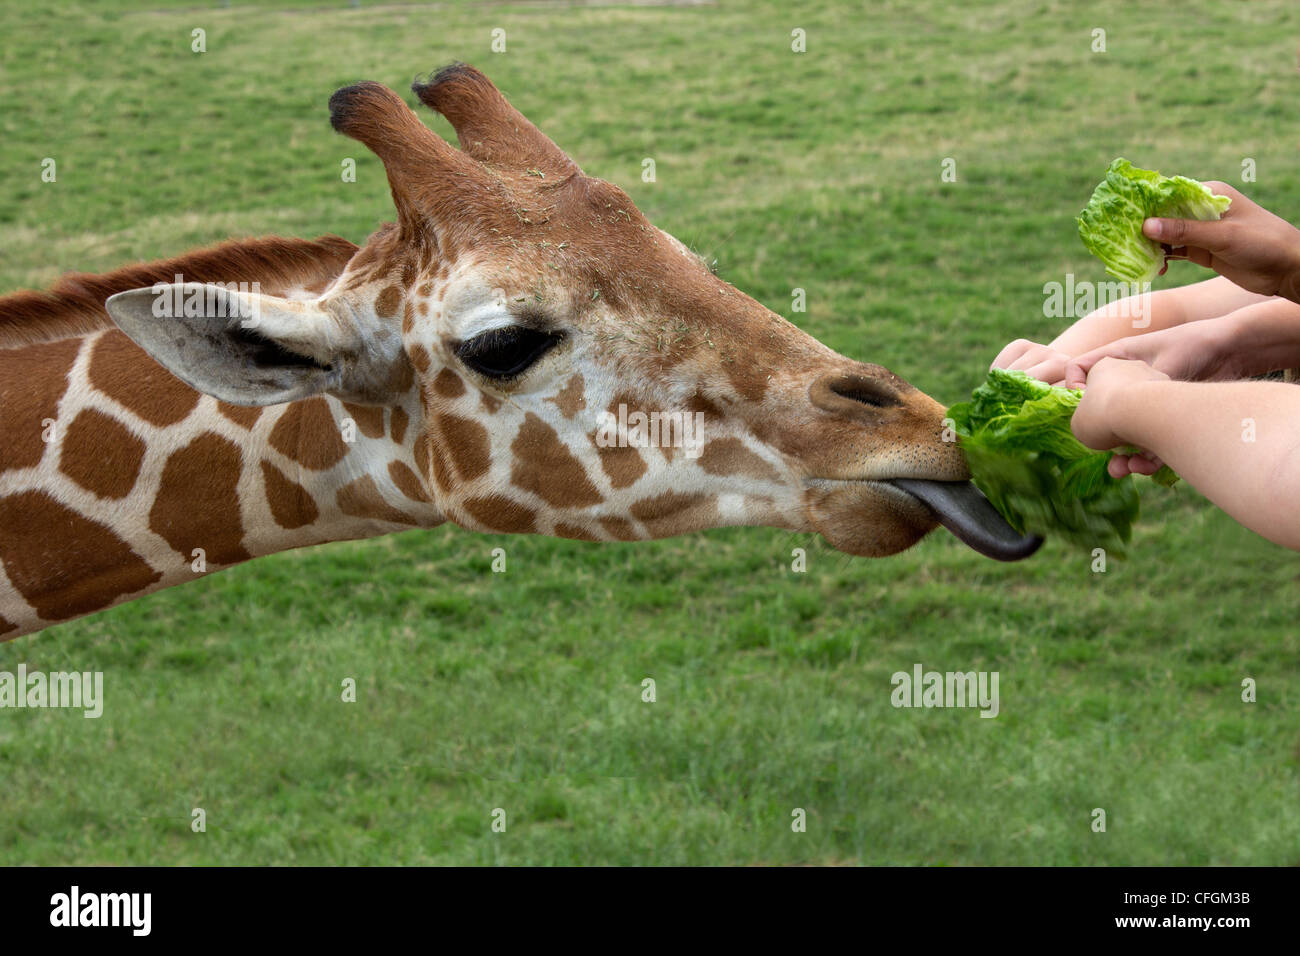 Young Hands Feed a Hungry Giraffe at a Petting Zoo - Stock Image